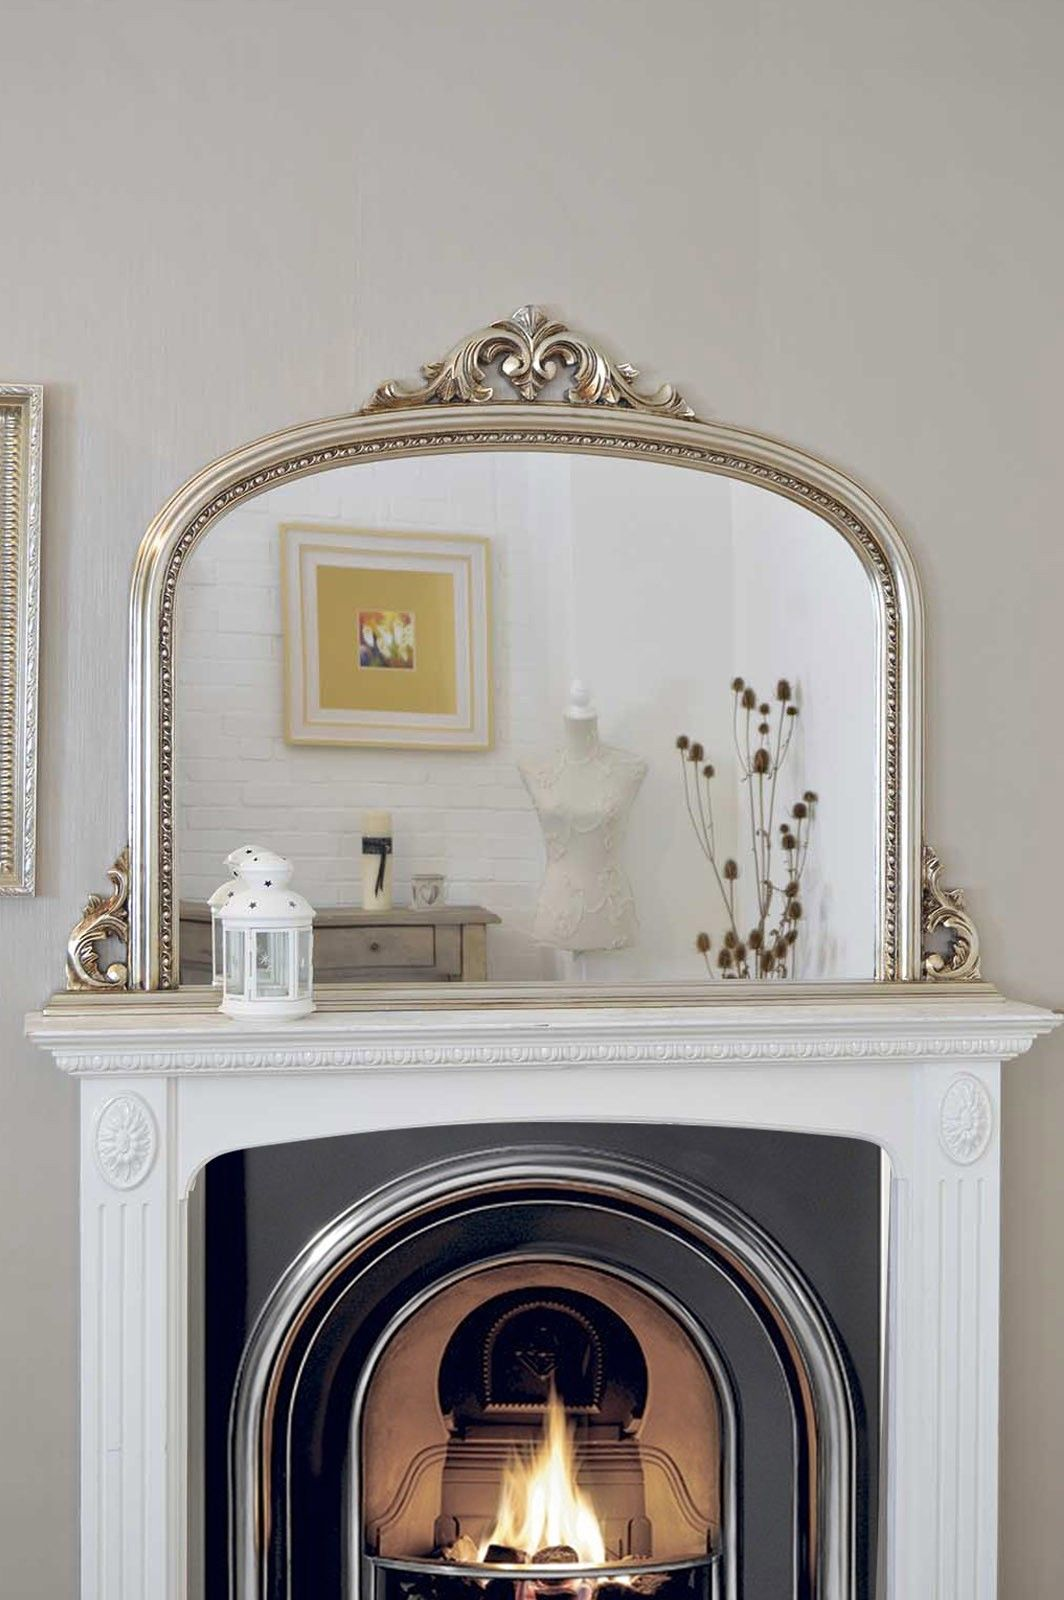 4Ft2 X 3Ft 120cm 90cm Large Silver Antique Design Over Mantle Big Wall Mirror MirrorsBathroom MirrorsFireplace